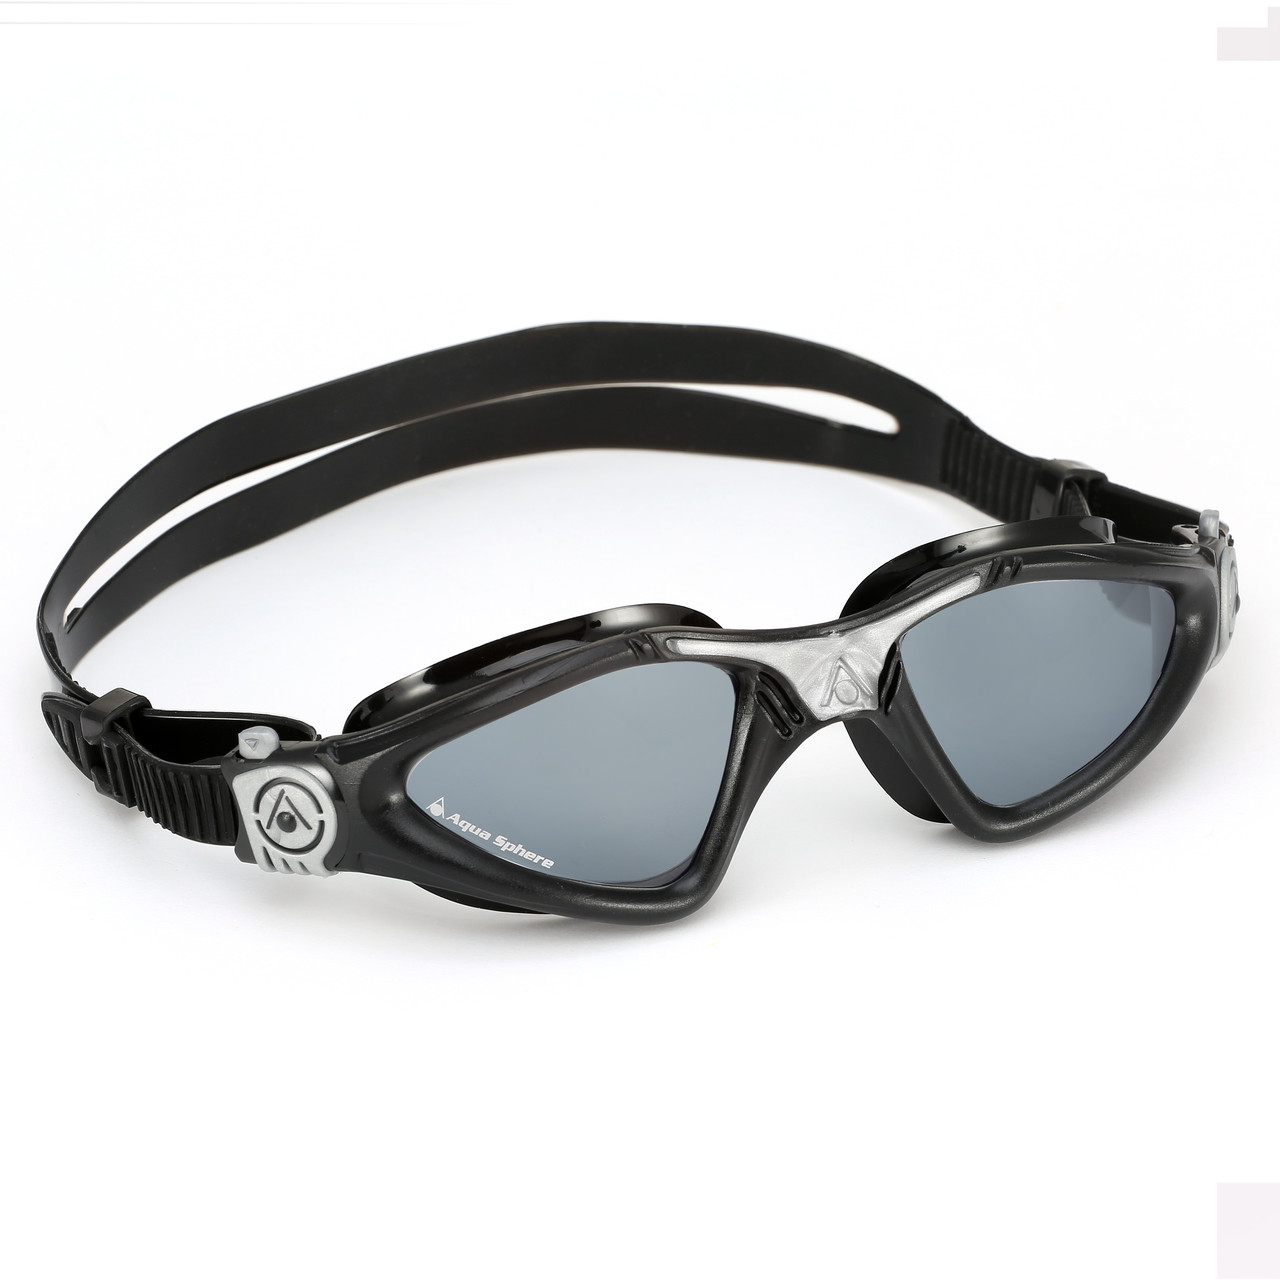 de9b1761513 Aqua Sphere Kayenne Goggle With Tinted Lens